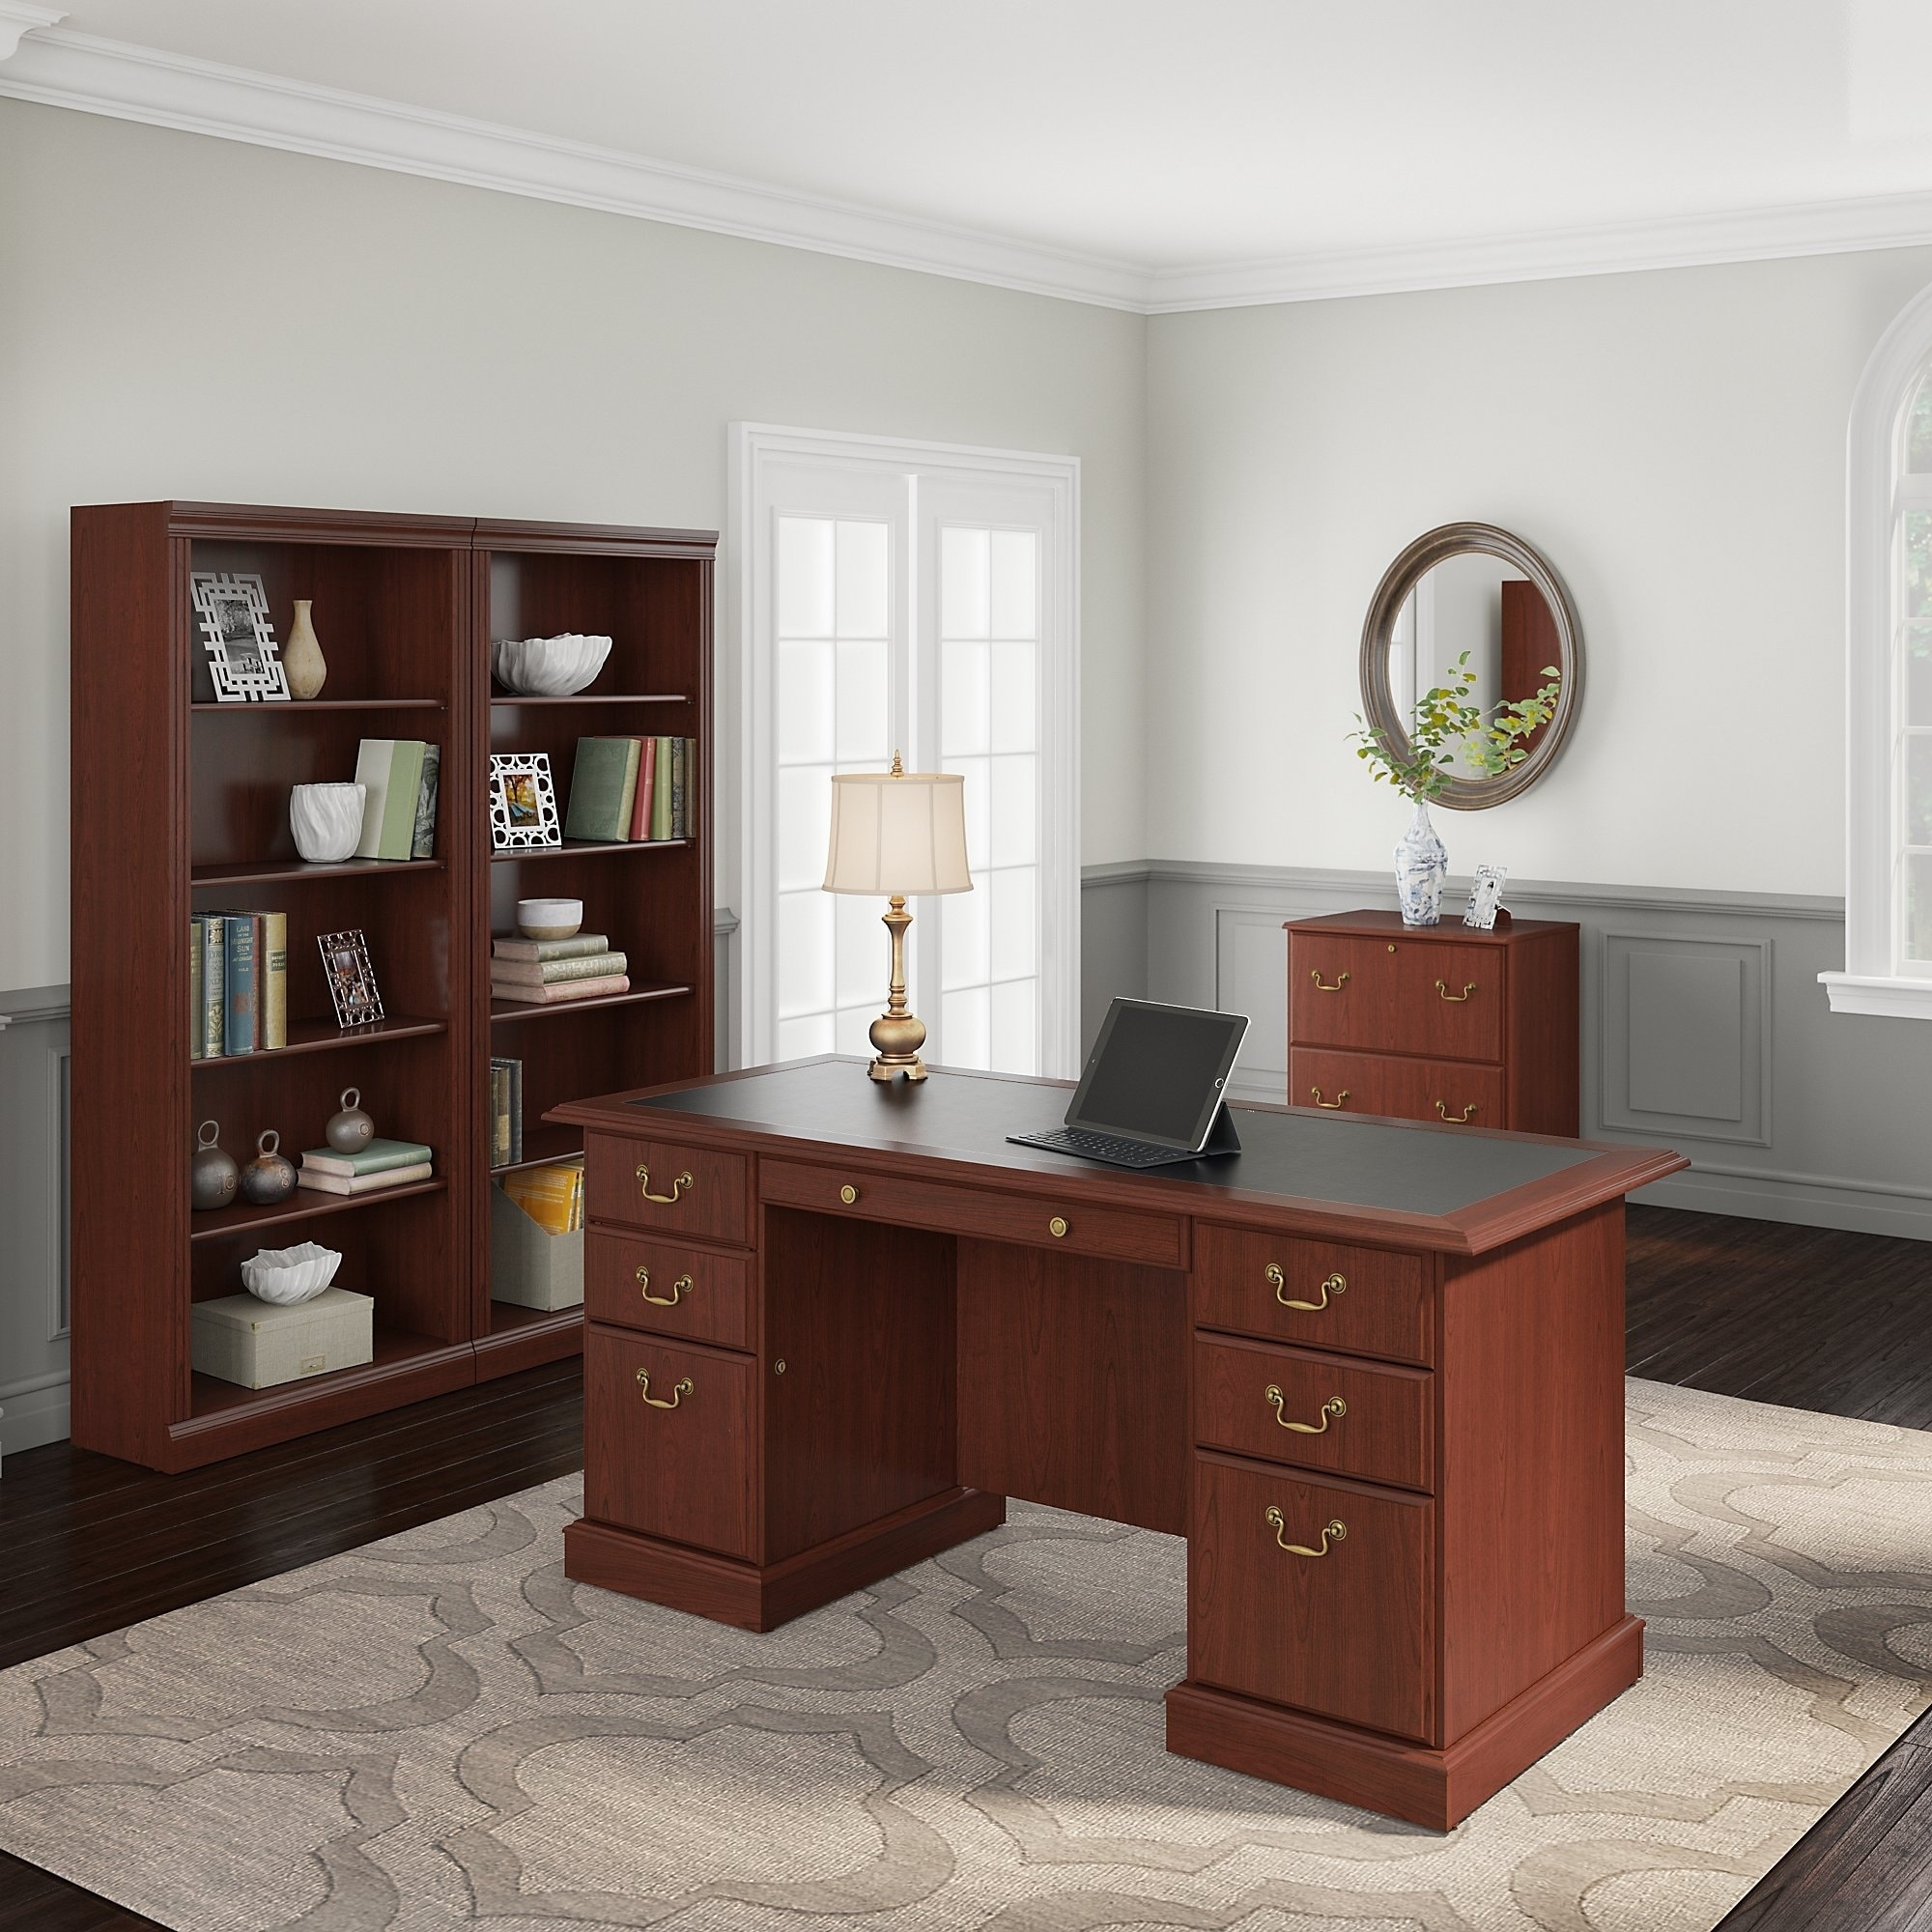 Desk With File Cabinet Copper Grove Dobrich Executive Desk Lateral File Cabinet And Two 5 Shelf Bookcases In Cherry